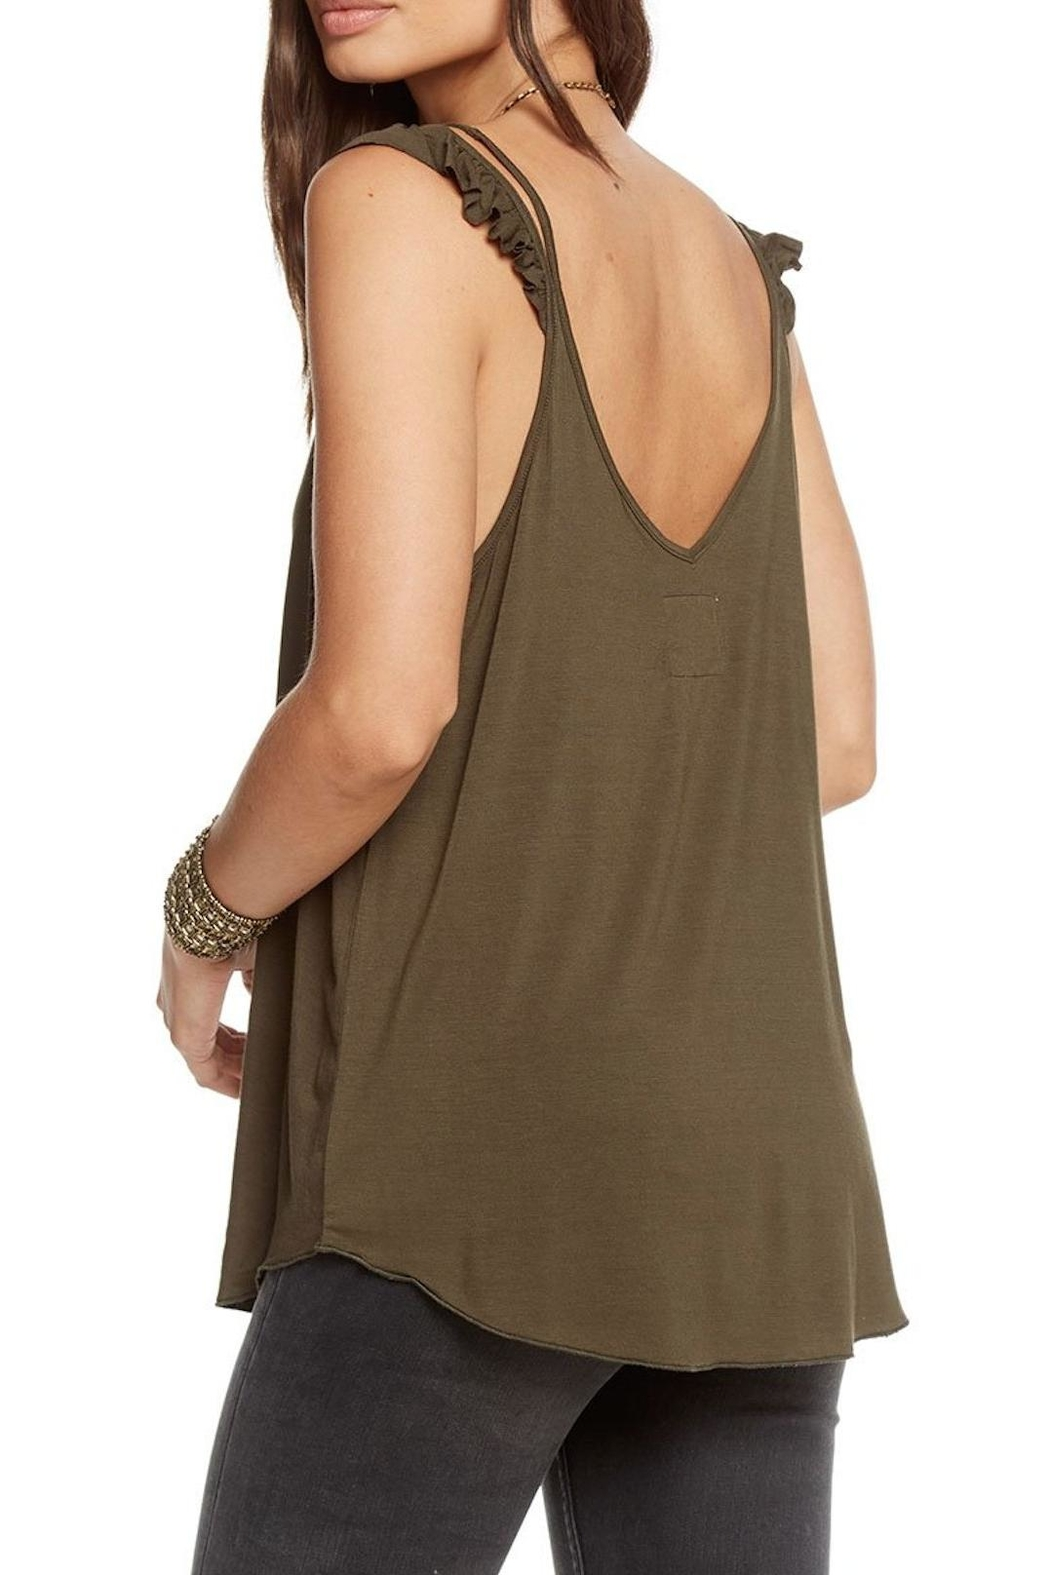 Chaser Green Ruffle Tank - Front Full Image